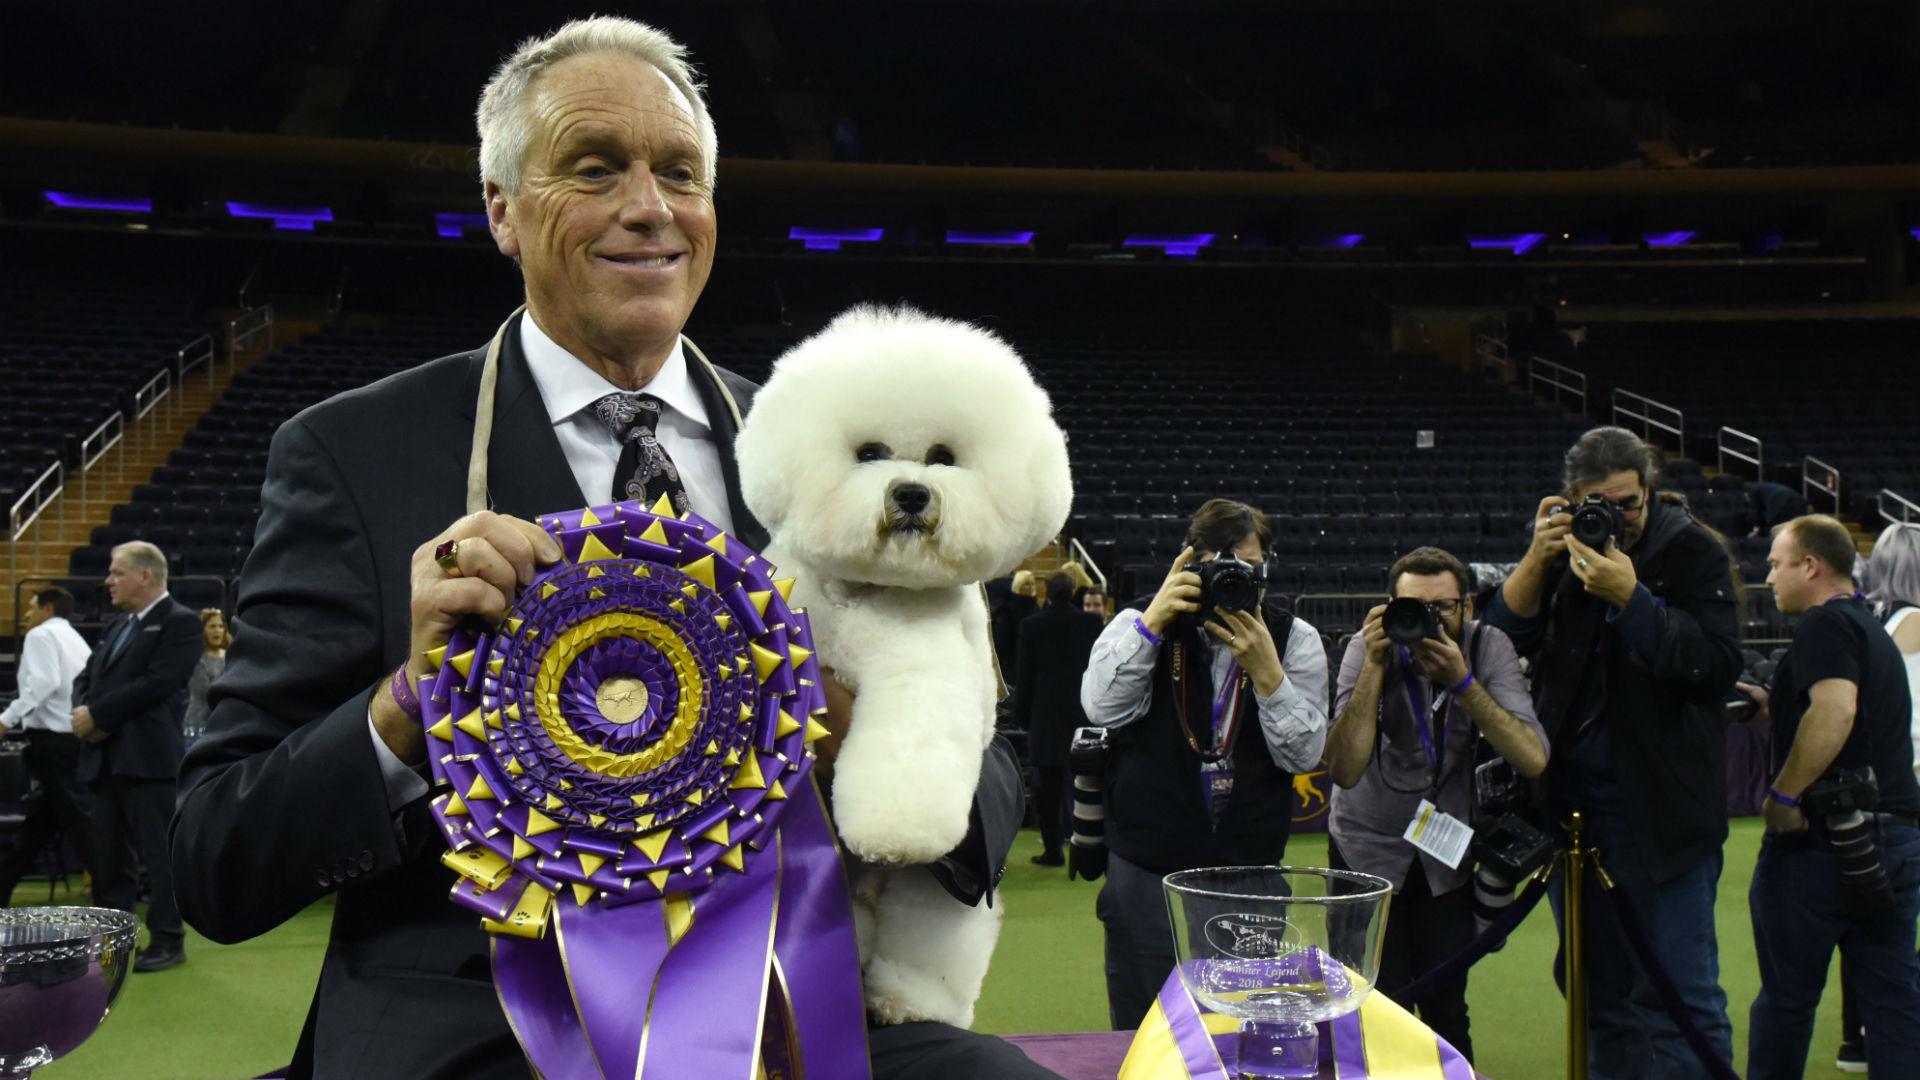 Westminster Dog Show 2019: Dates, TV schedule, live stream